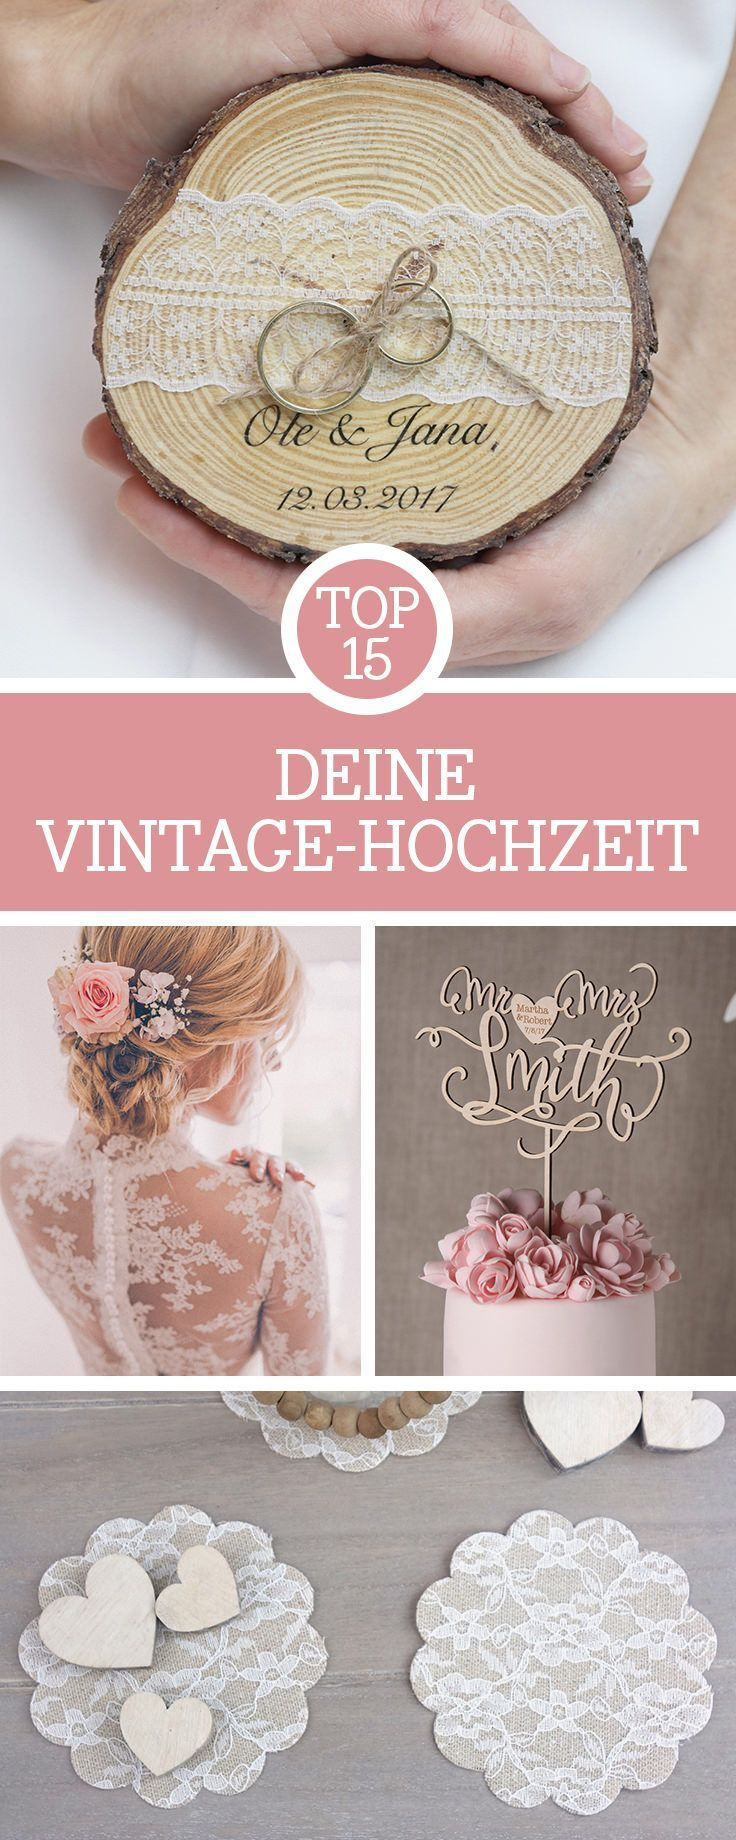 25 best ideas about vintage hochzeit on pinterest. Black Bedroom Furniture Sets. Home Design Ideas